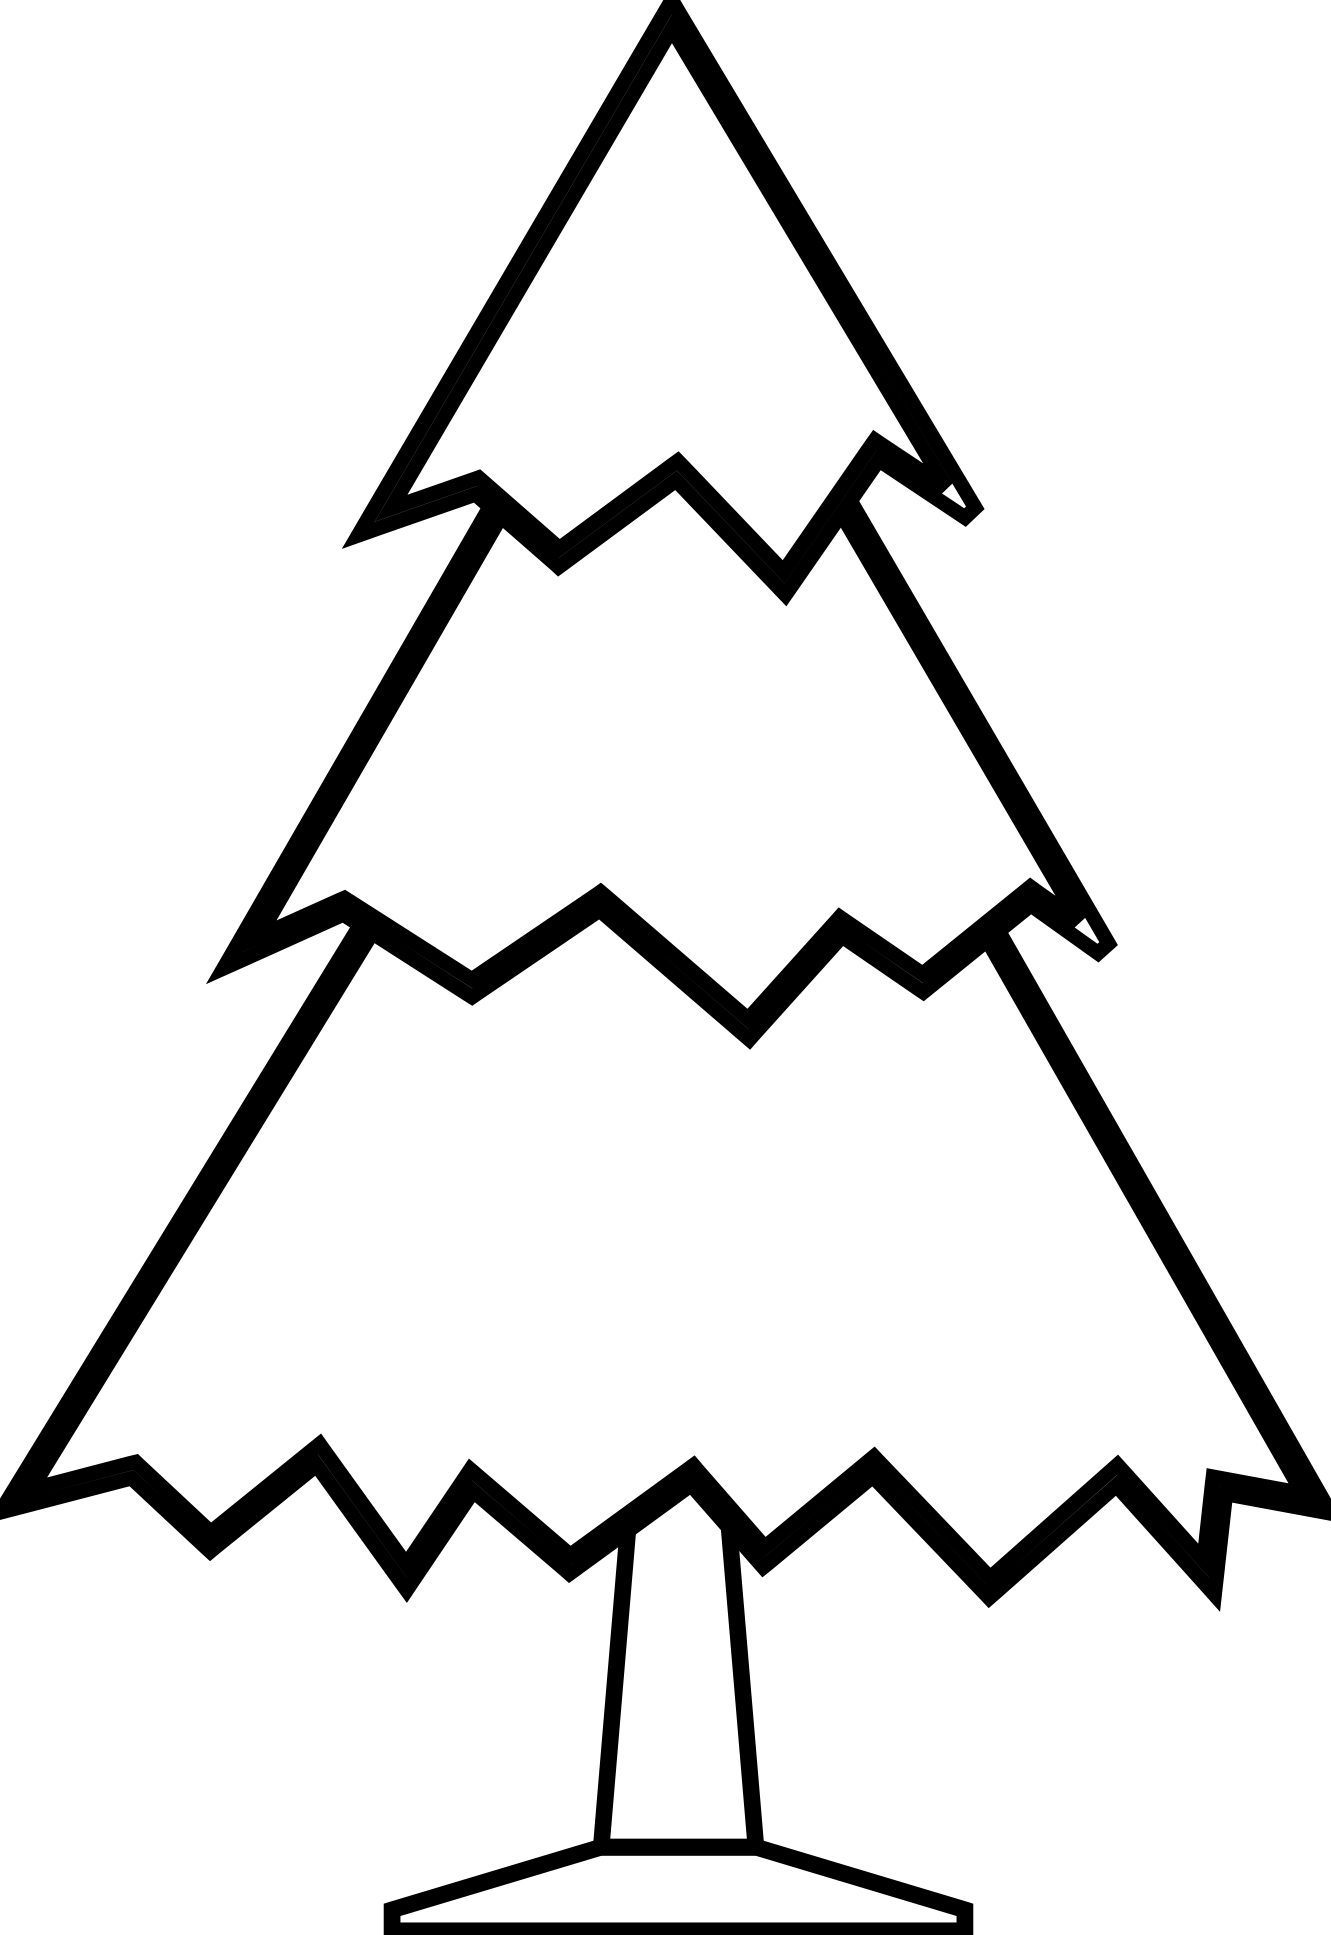 Free clipart christmas black and white png Apple Tree Clipart Black And White | Clipart Panda - Free Clipart Images png